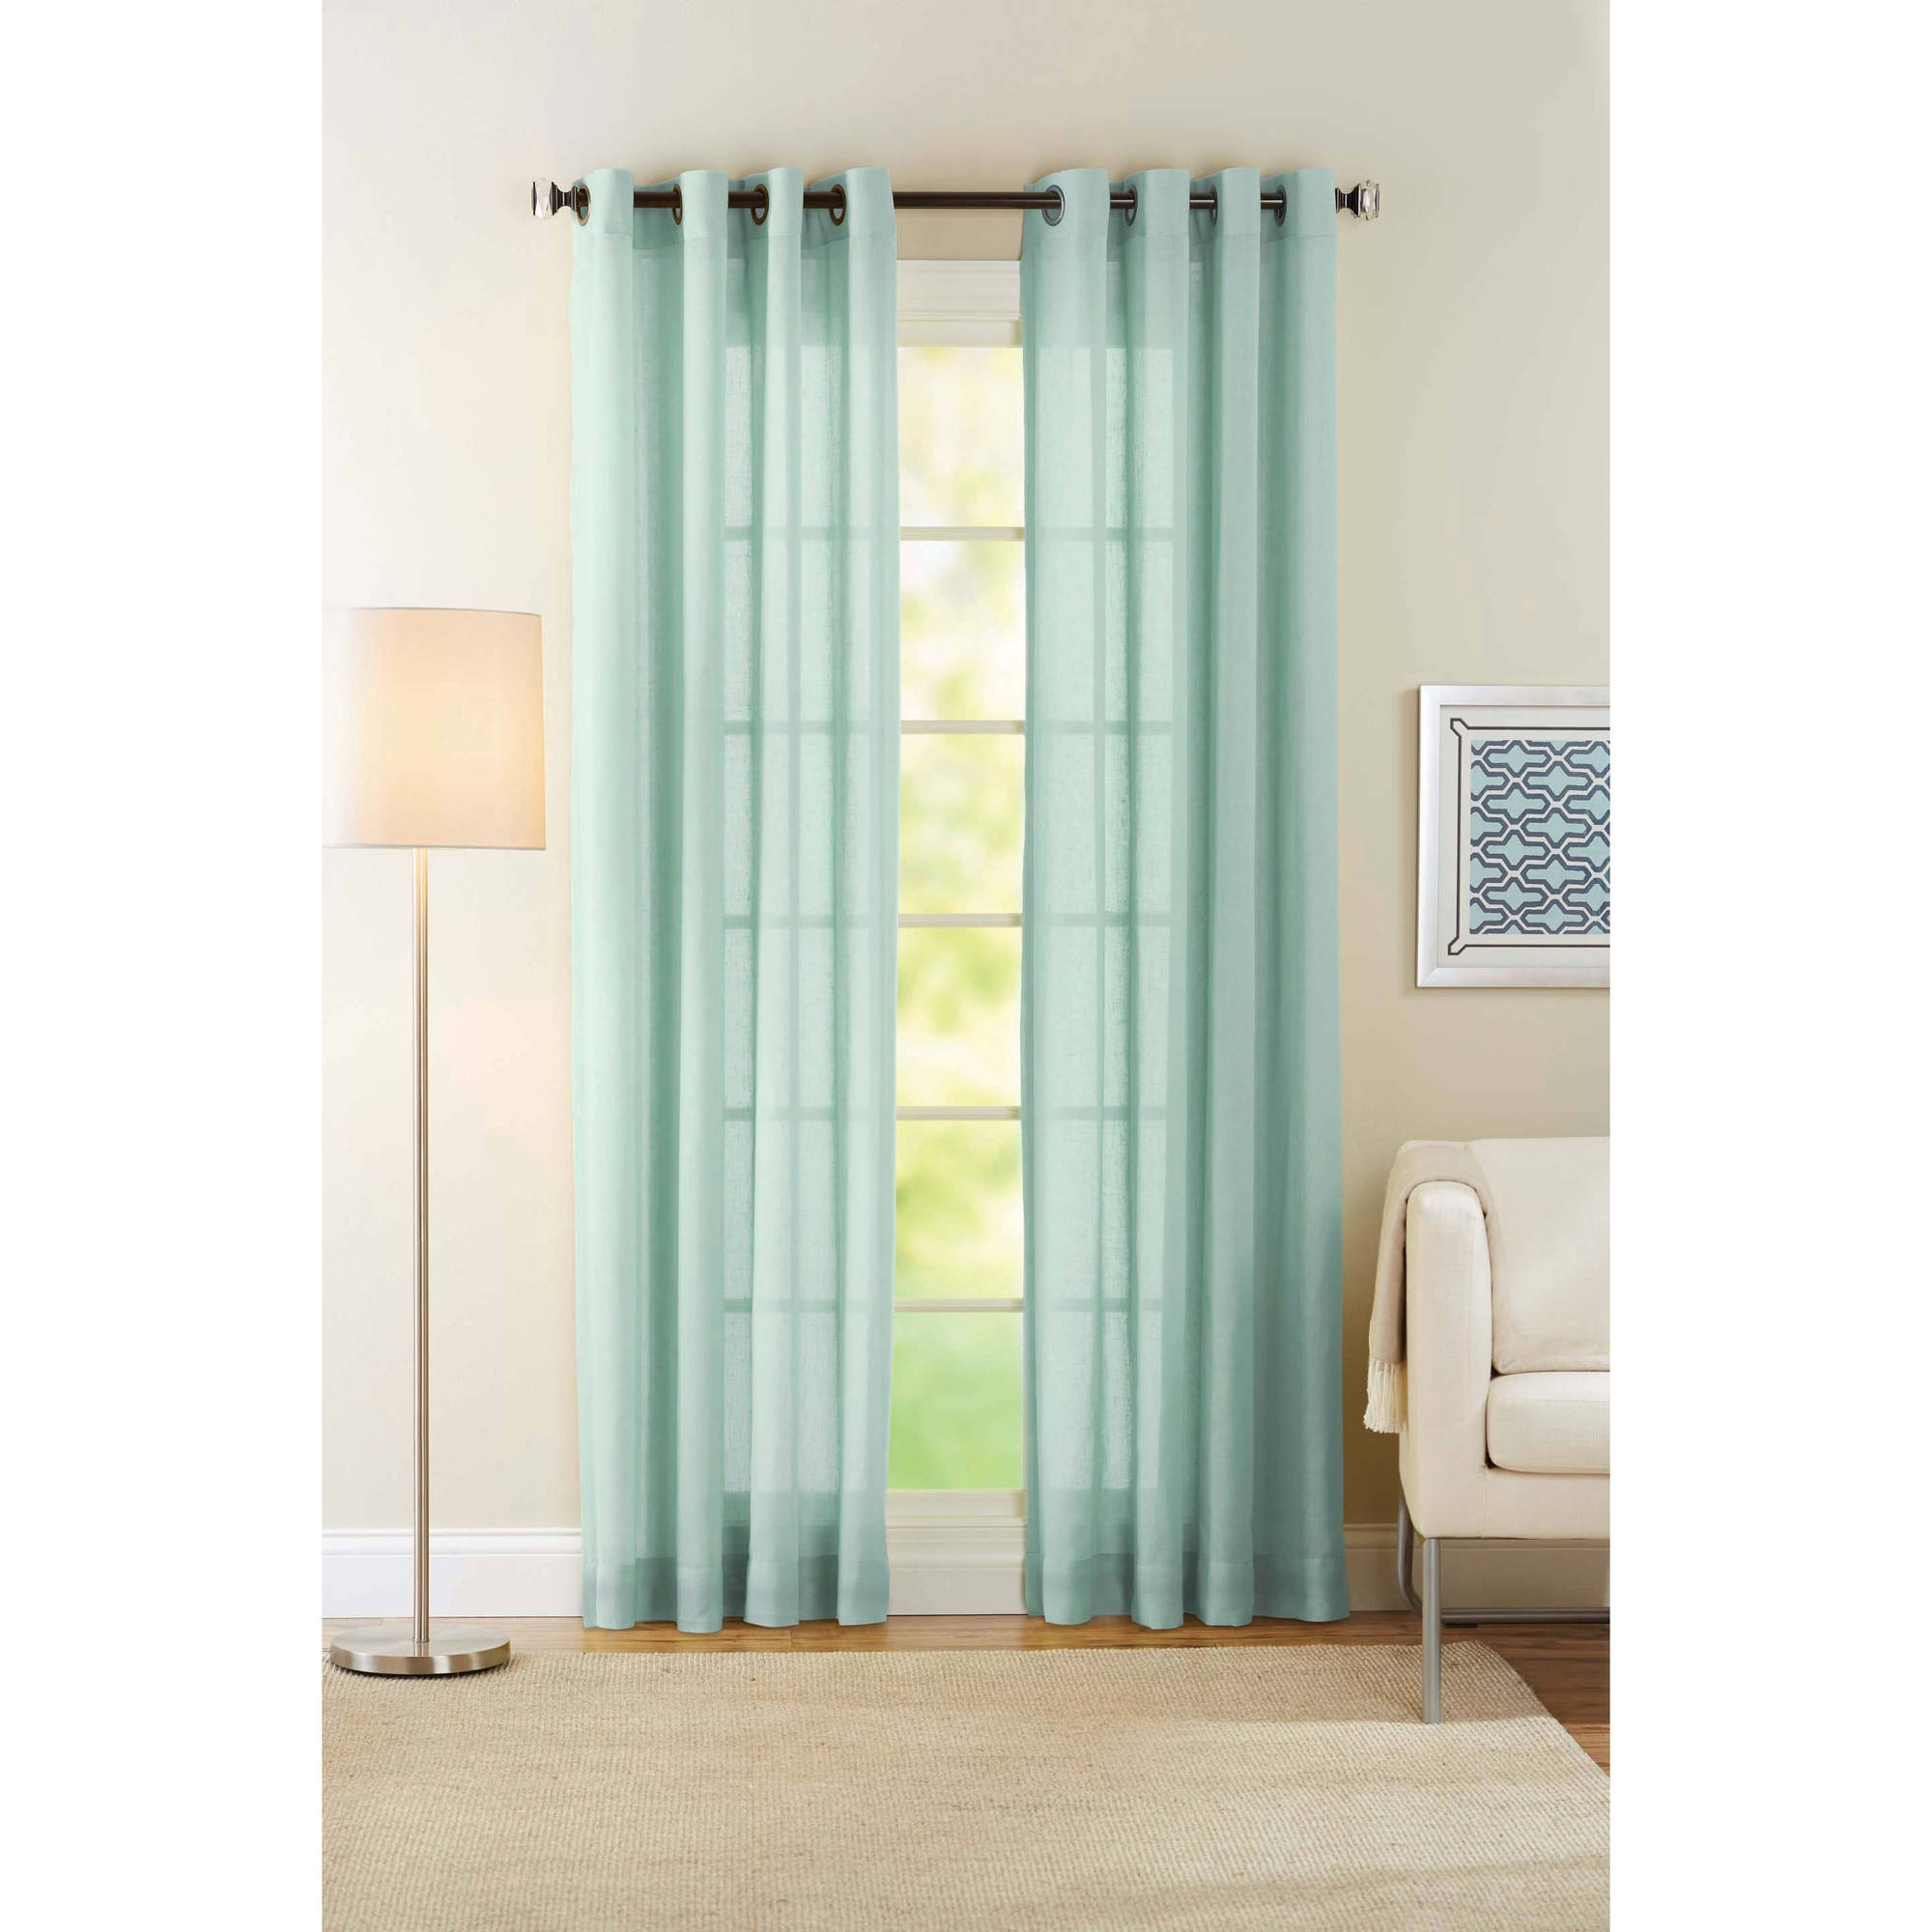 Aqua Curtains Throughout Turquoise Trellis Curtains (Image 1 of 25)